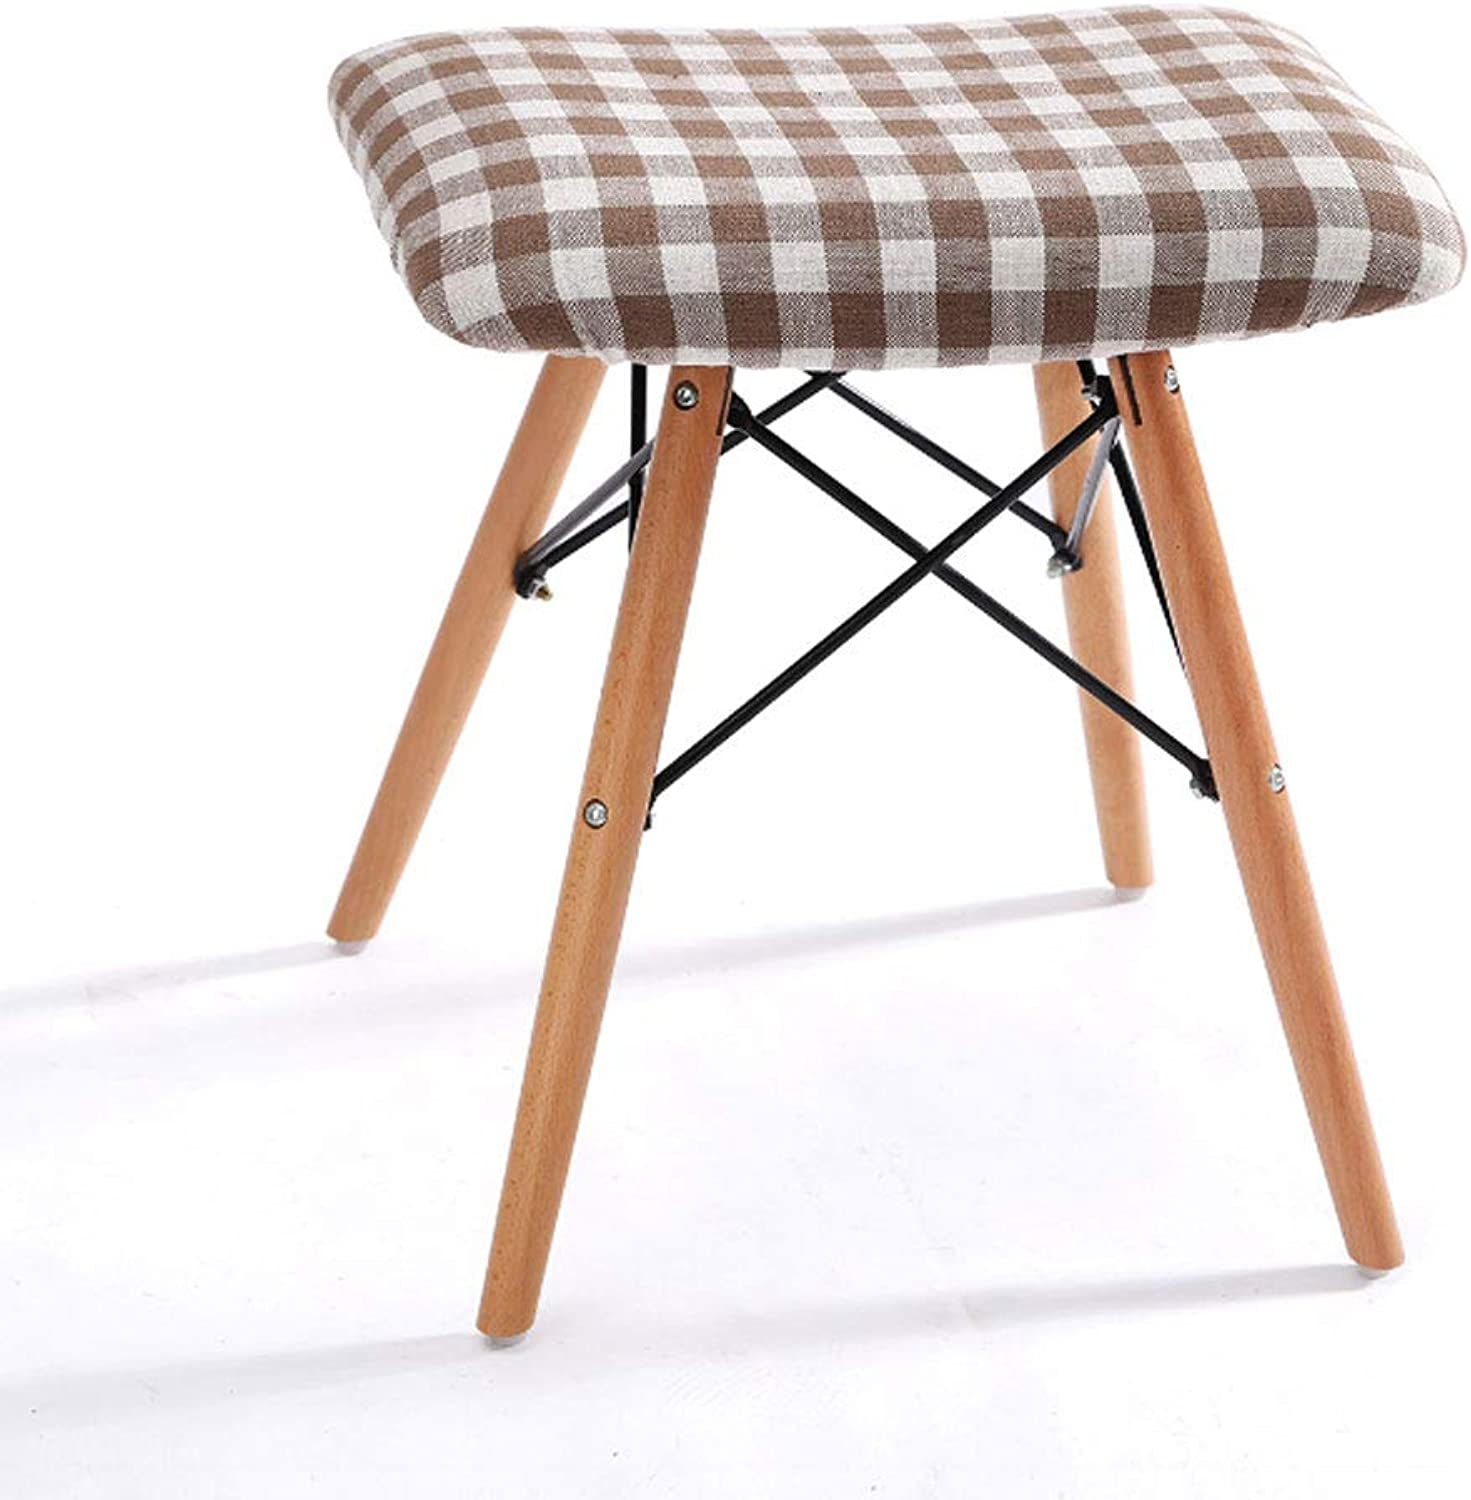 ZXW STOOLS- Solid Wood Dining Stool Fabric Washable Household Stool (color   Lattice, Size   42x30x46cm)